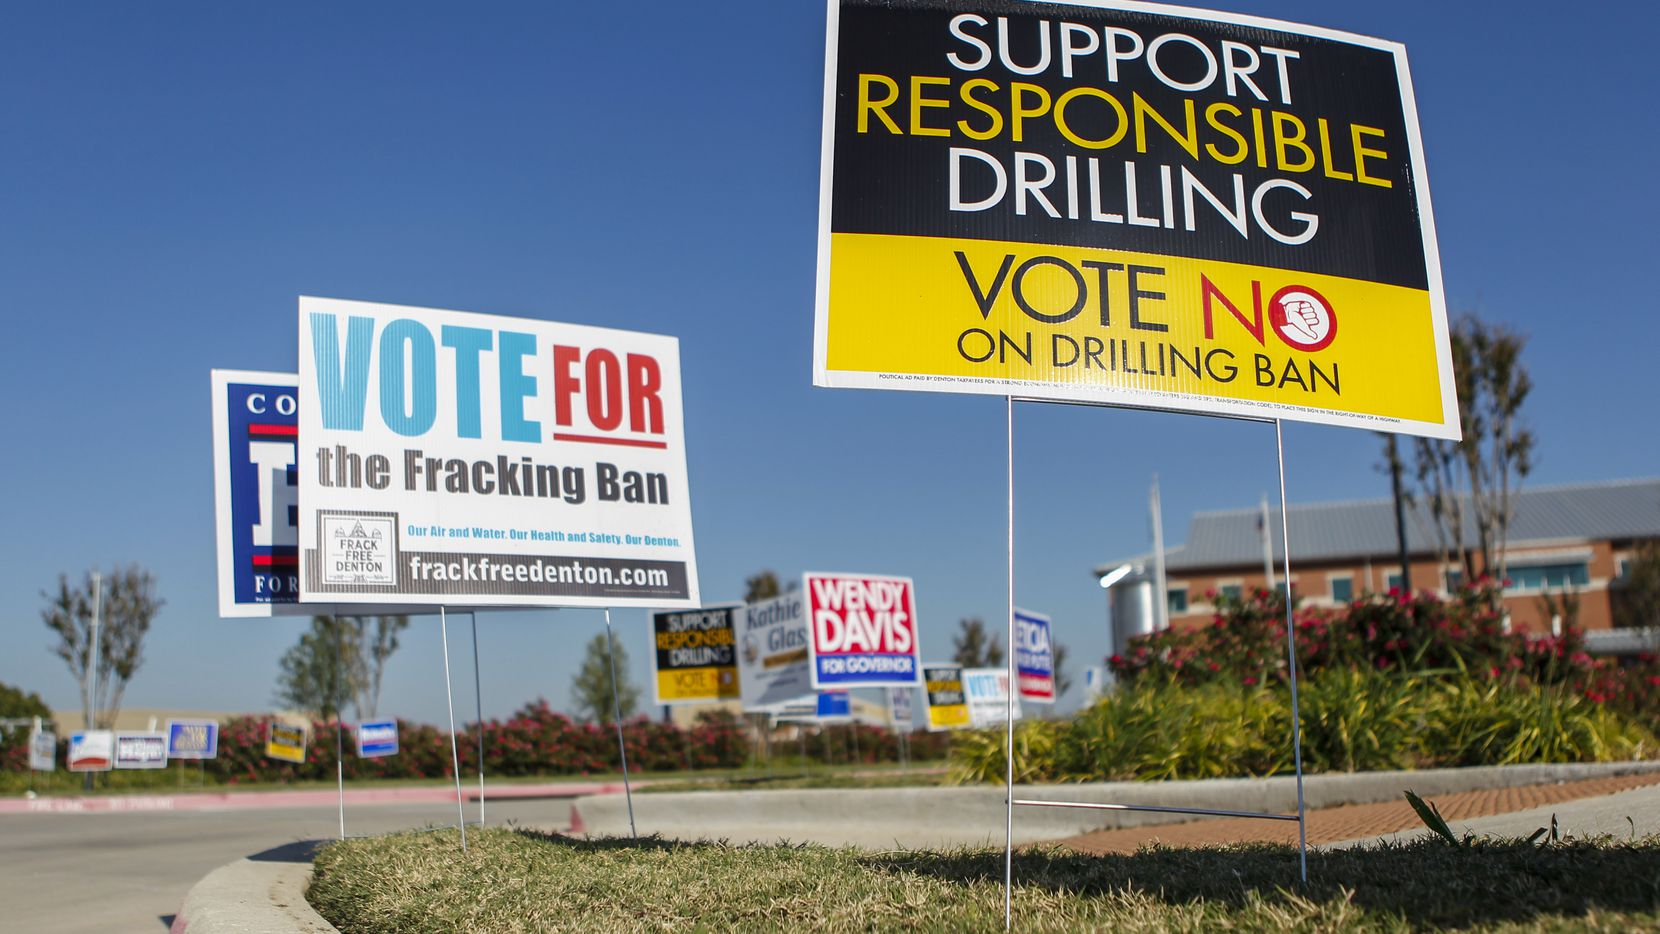 Signs promoting opposing views on Denton's proposed fracking ban are on display outside the Denton County Elections Office in Denton, Texas on Saturday, Oct. 25, 2014. (Jim Tuttle/The Dallas Morning News) 10302014xBIZ 10312014xBRIEFING 11072014xNEWS